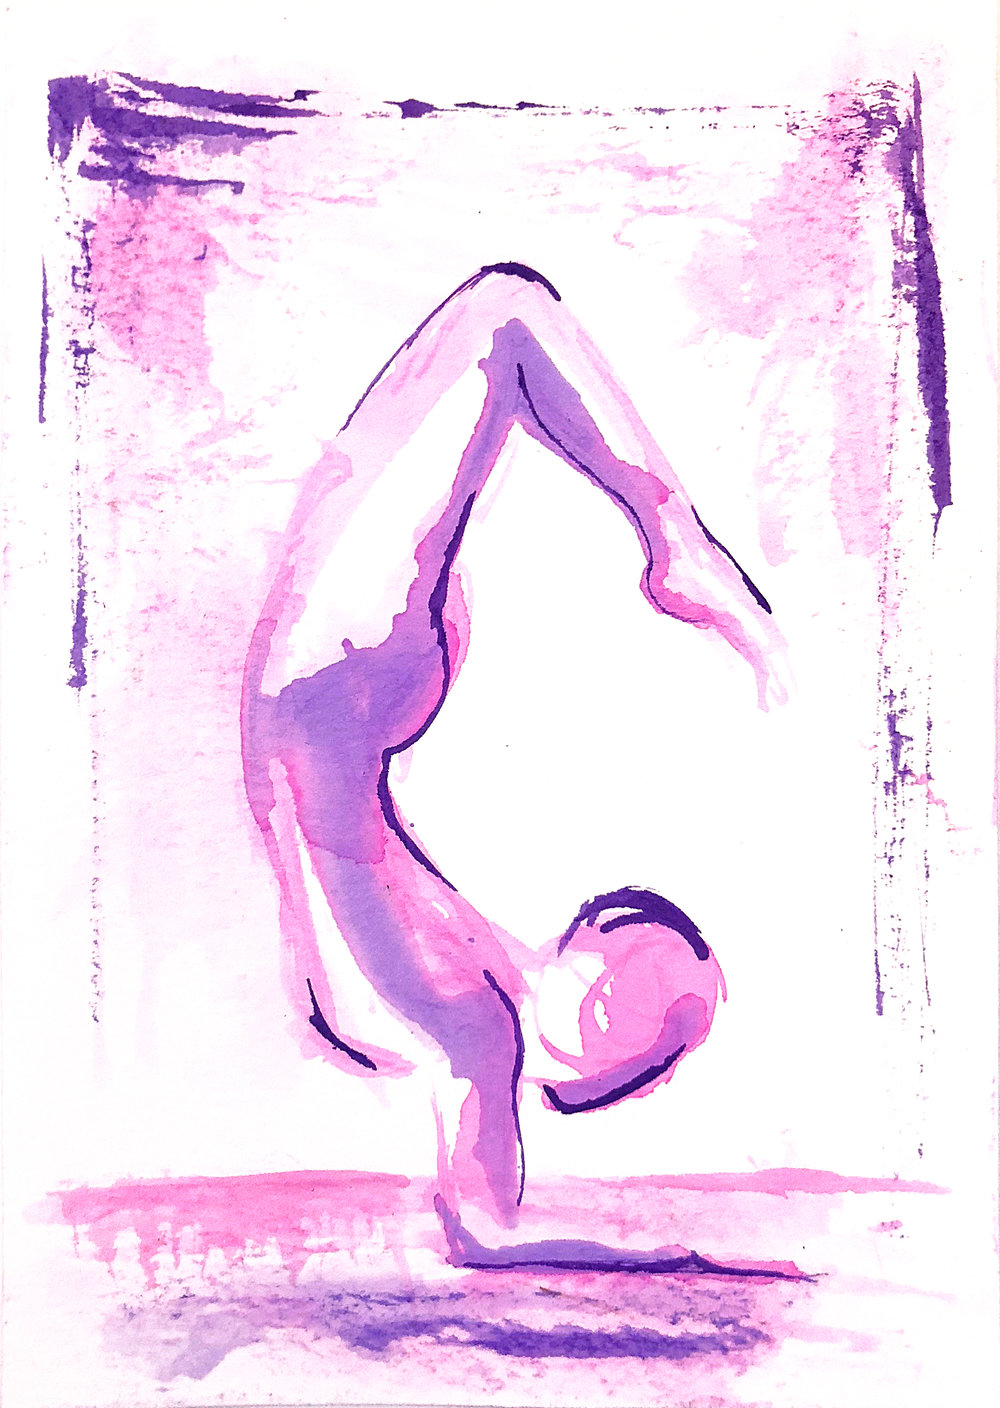 Watercolor on paper, painted with palette knives, yoga pose scorpion pose or vrishchikasana.